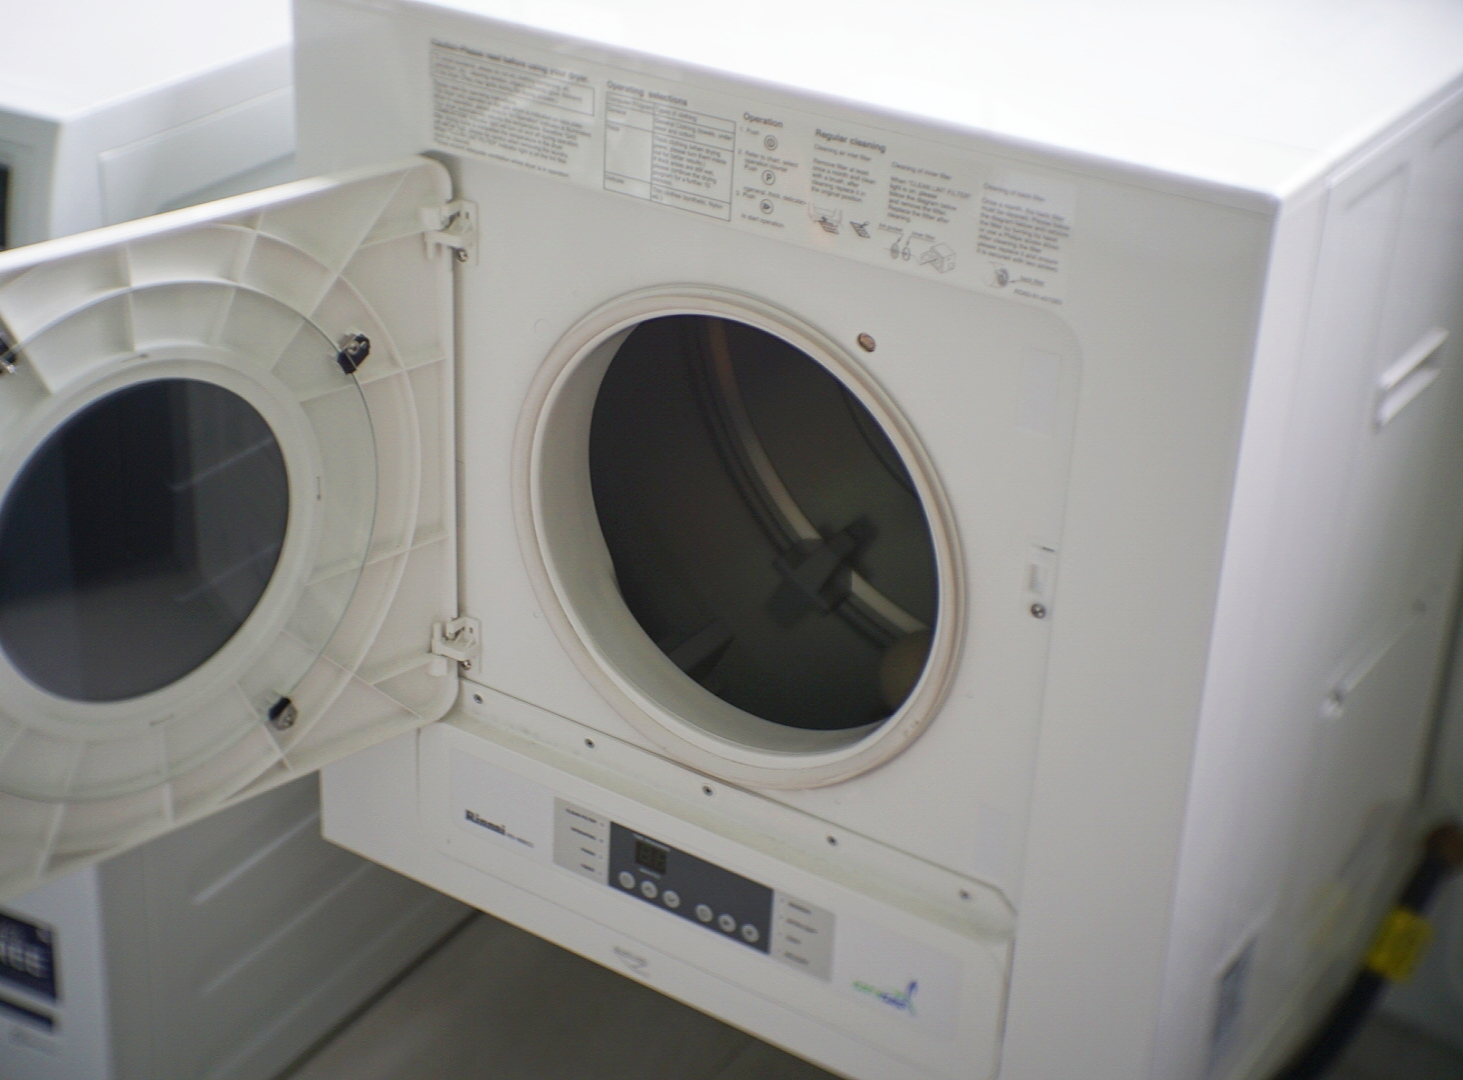 The Rinnai RD-600CG is efficient, and dries clothes quickly.